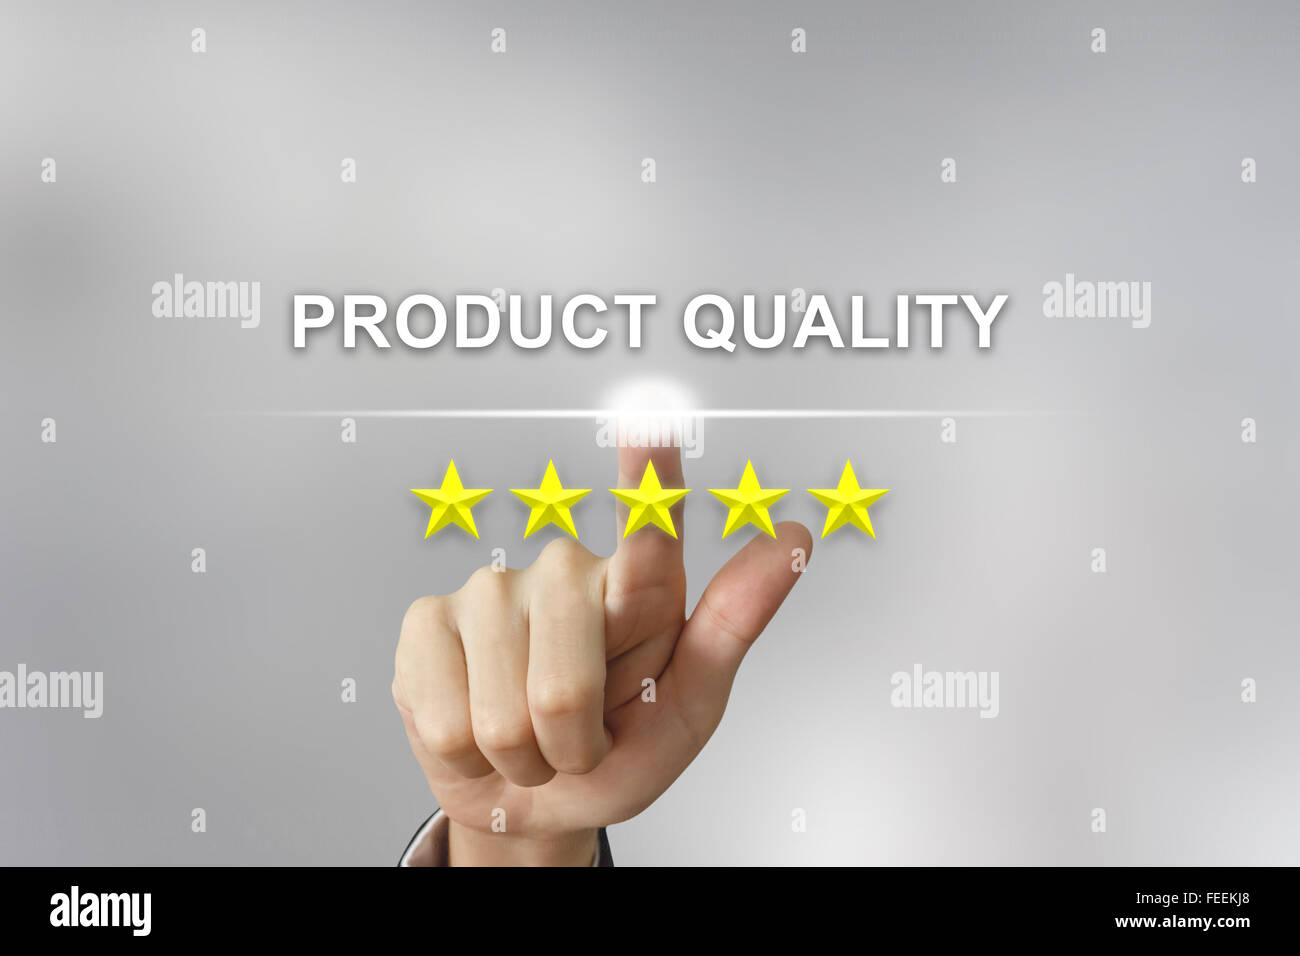 business hand clicking product quality with five stars on screen - Stock Image